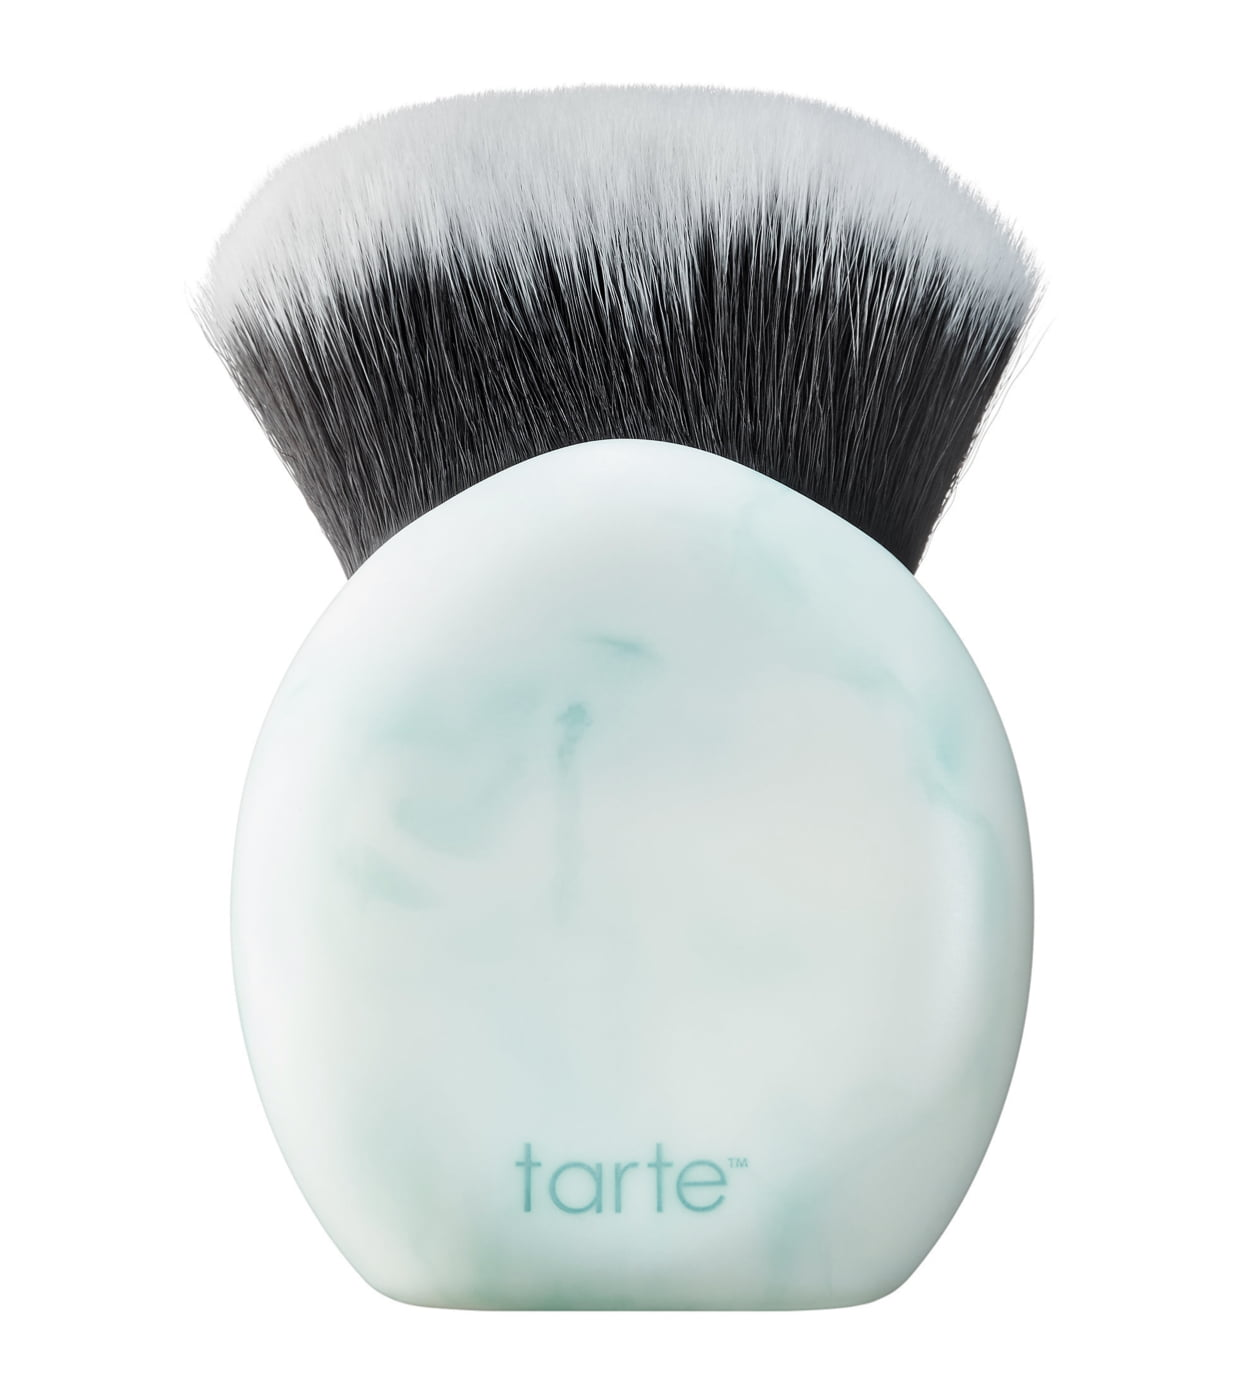 Tarte Breezy Blender Cream Bronzer Brush